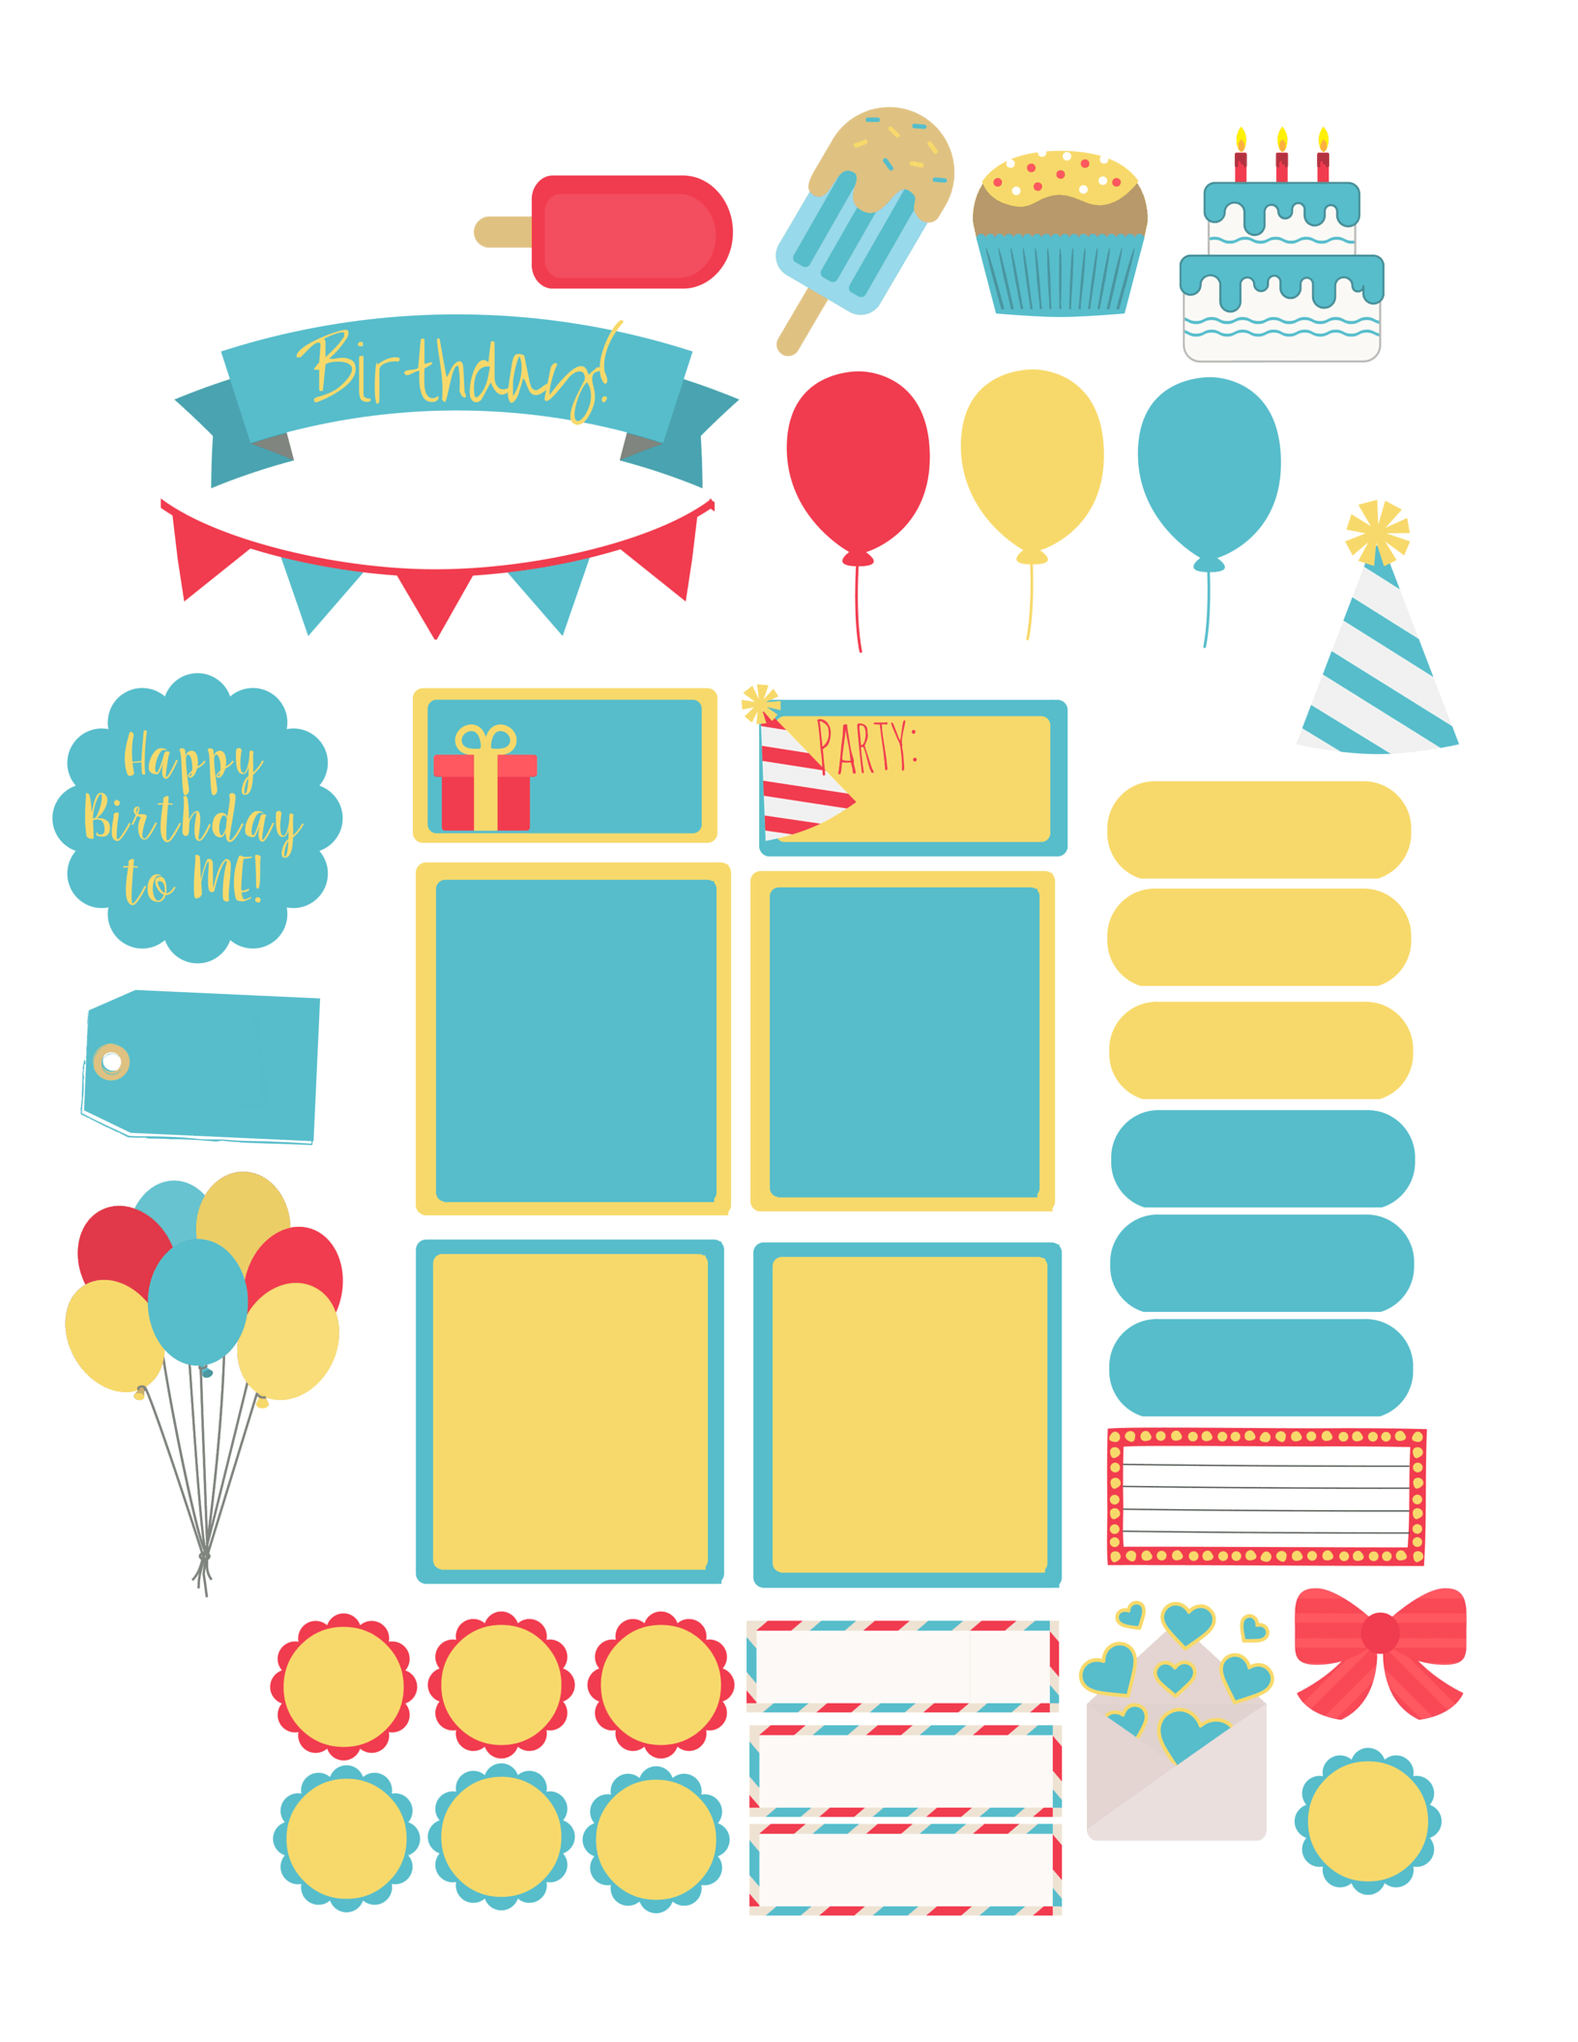 Birthday week layout